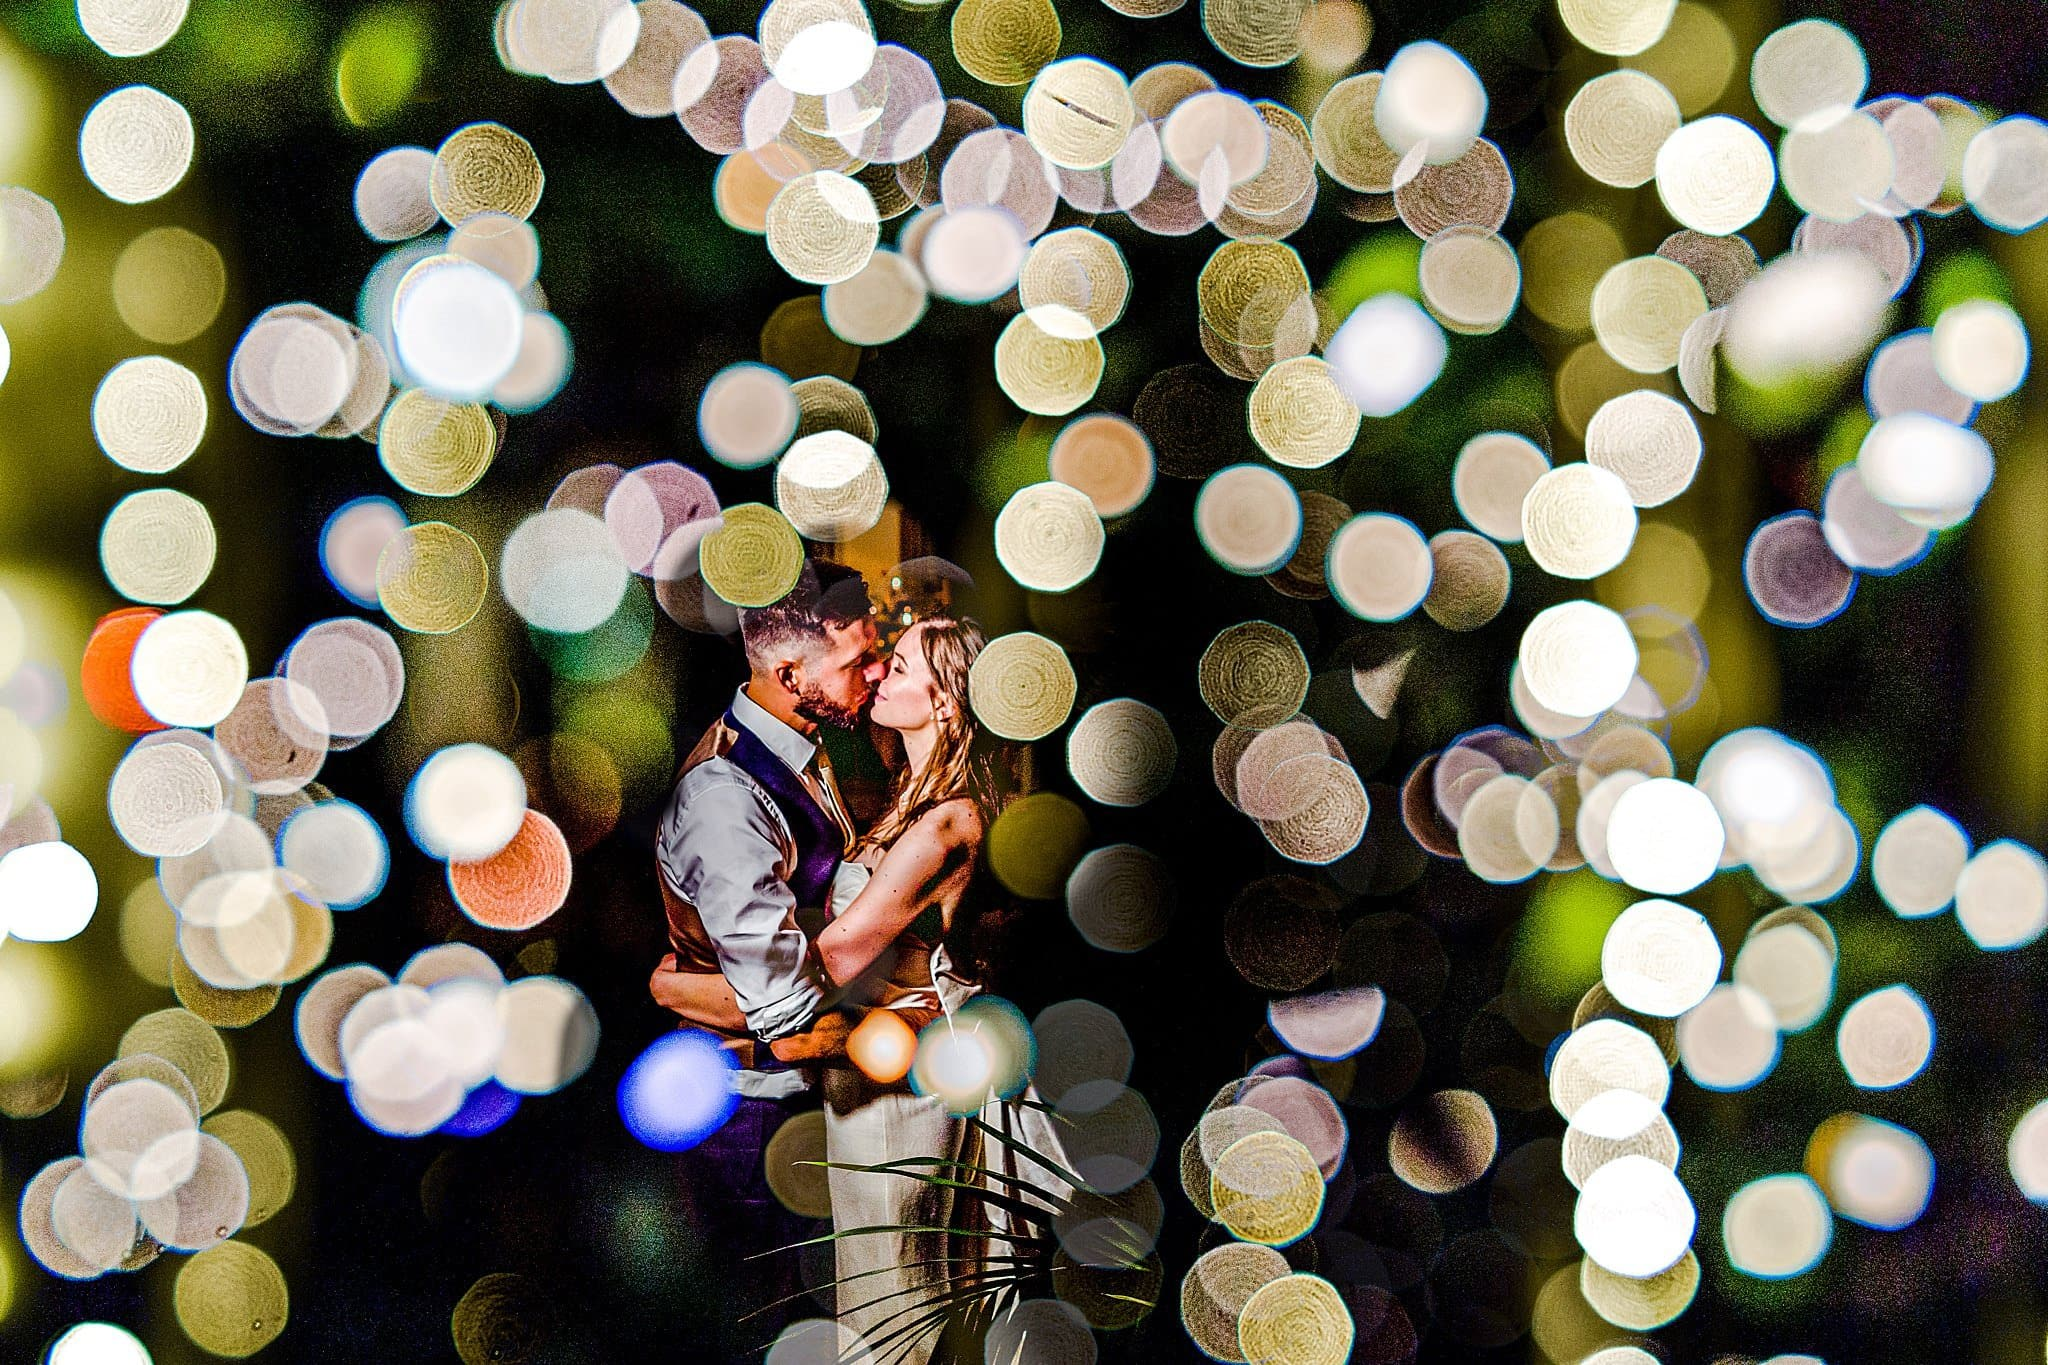 Creative portrait of the bride and groom in the orangery at night at Prestwold Hall